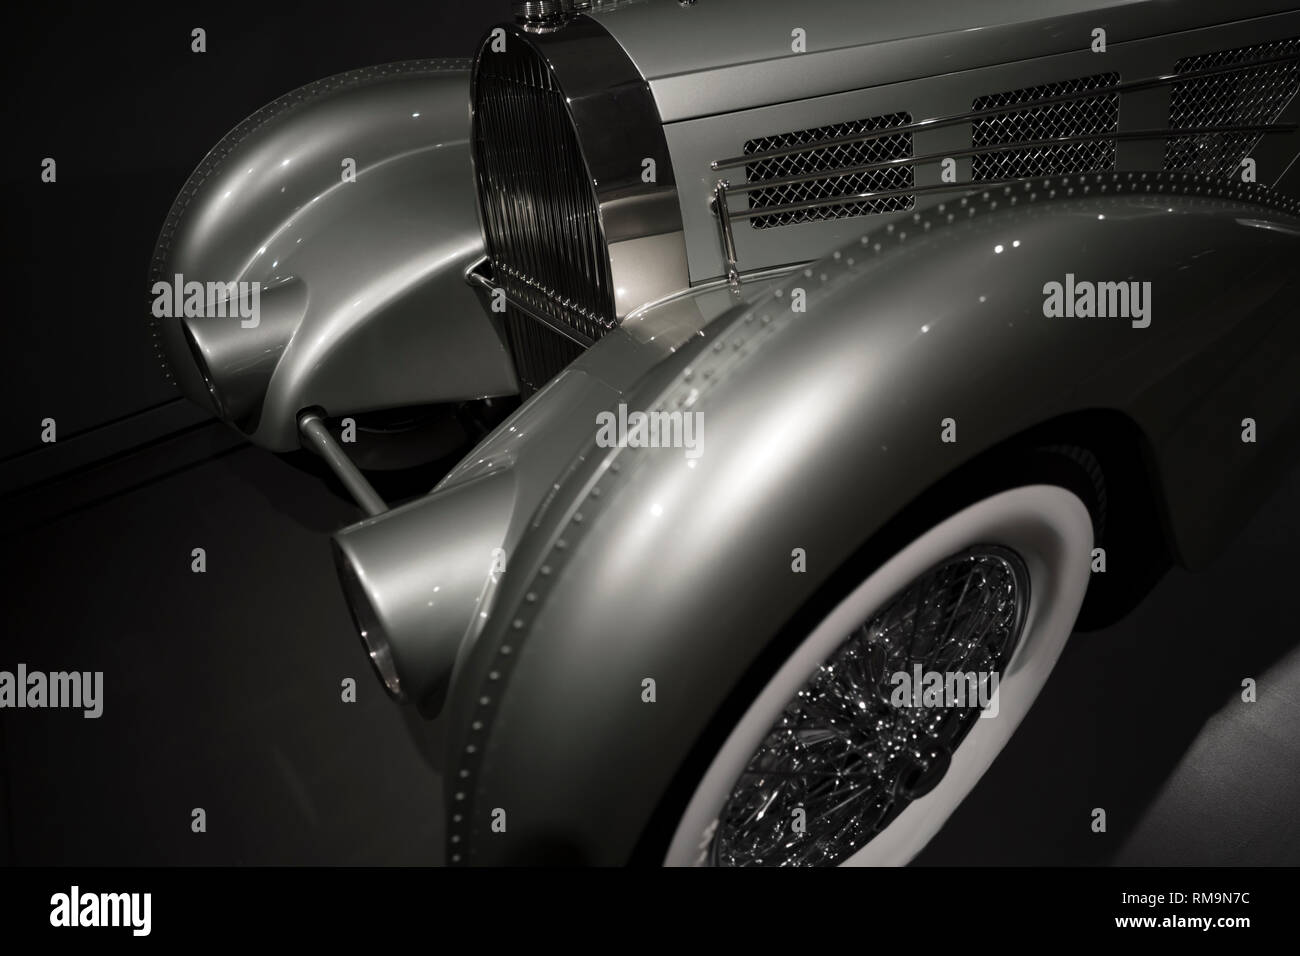 Old vintage car with a streamlined aerodynamic body shape with large fenders and convex headlights inherent in the design of retro cars, and with geom - Stock Image